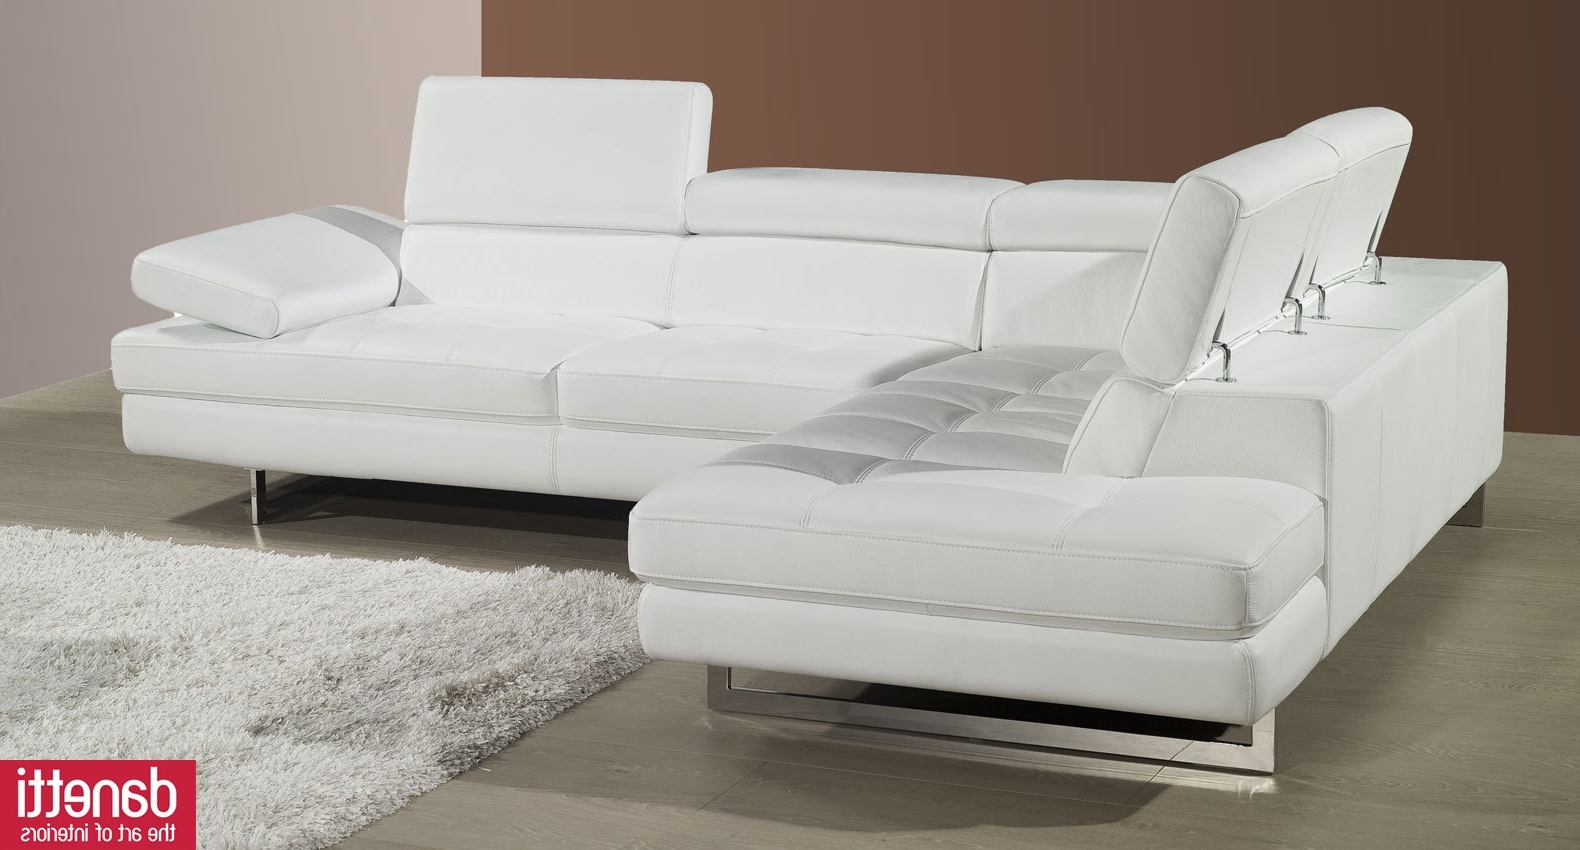 Most Popular Beautiful White Leather Modern Sofa 85 On Modern Sofa Inspiration Pertaining To White Modern Sofas (View 6 of 15)